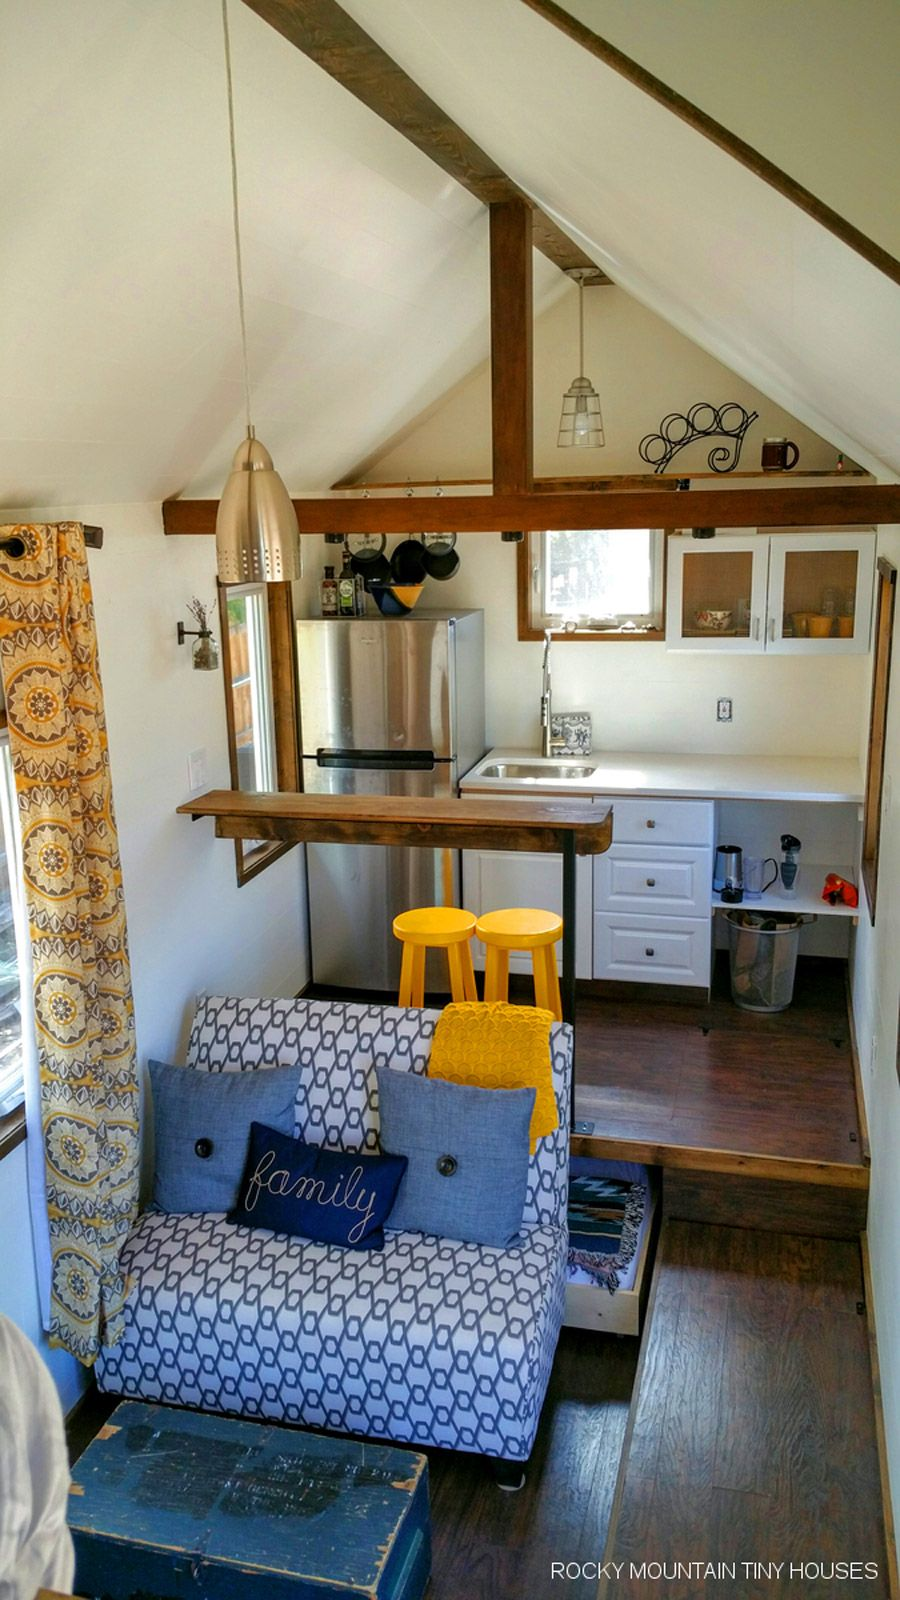 Albuquerque House Tiny House Living Tiny House Inspiration Tiny House Nation